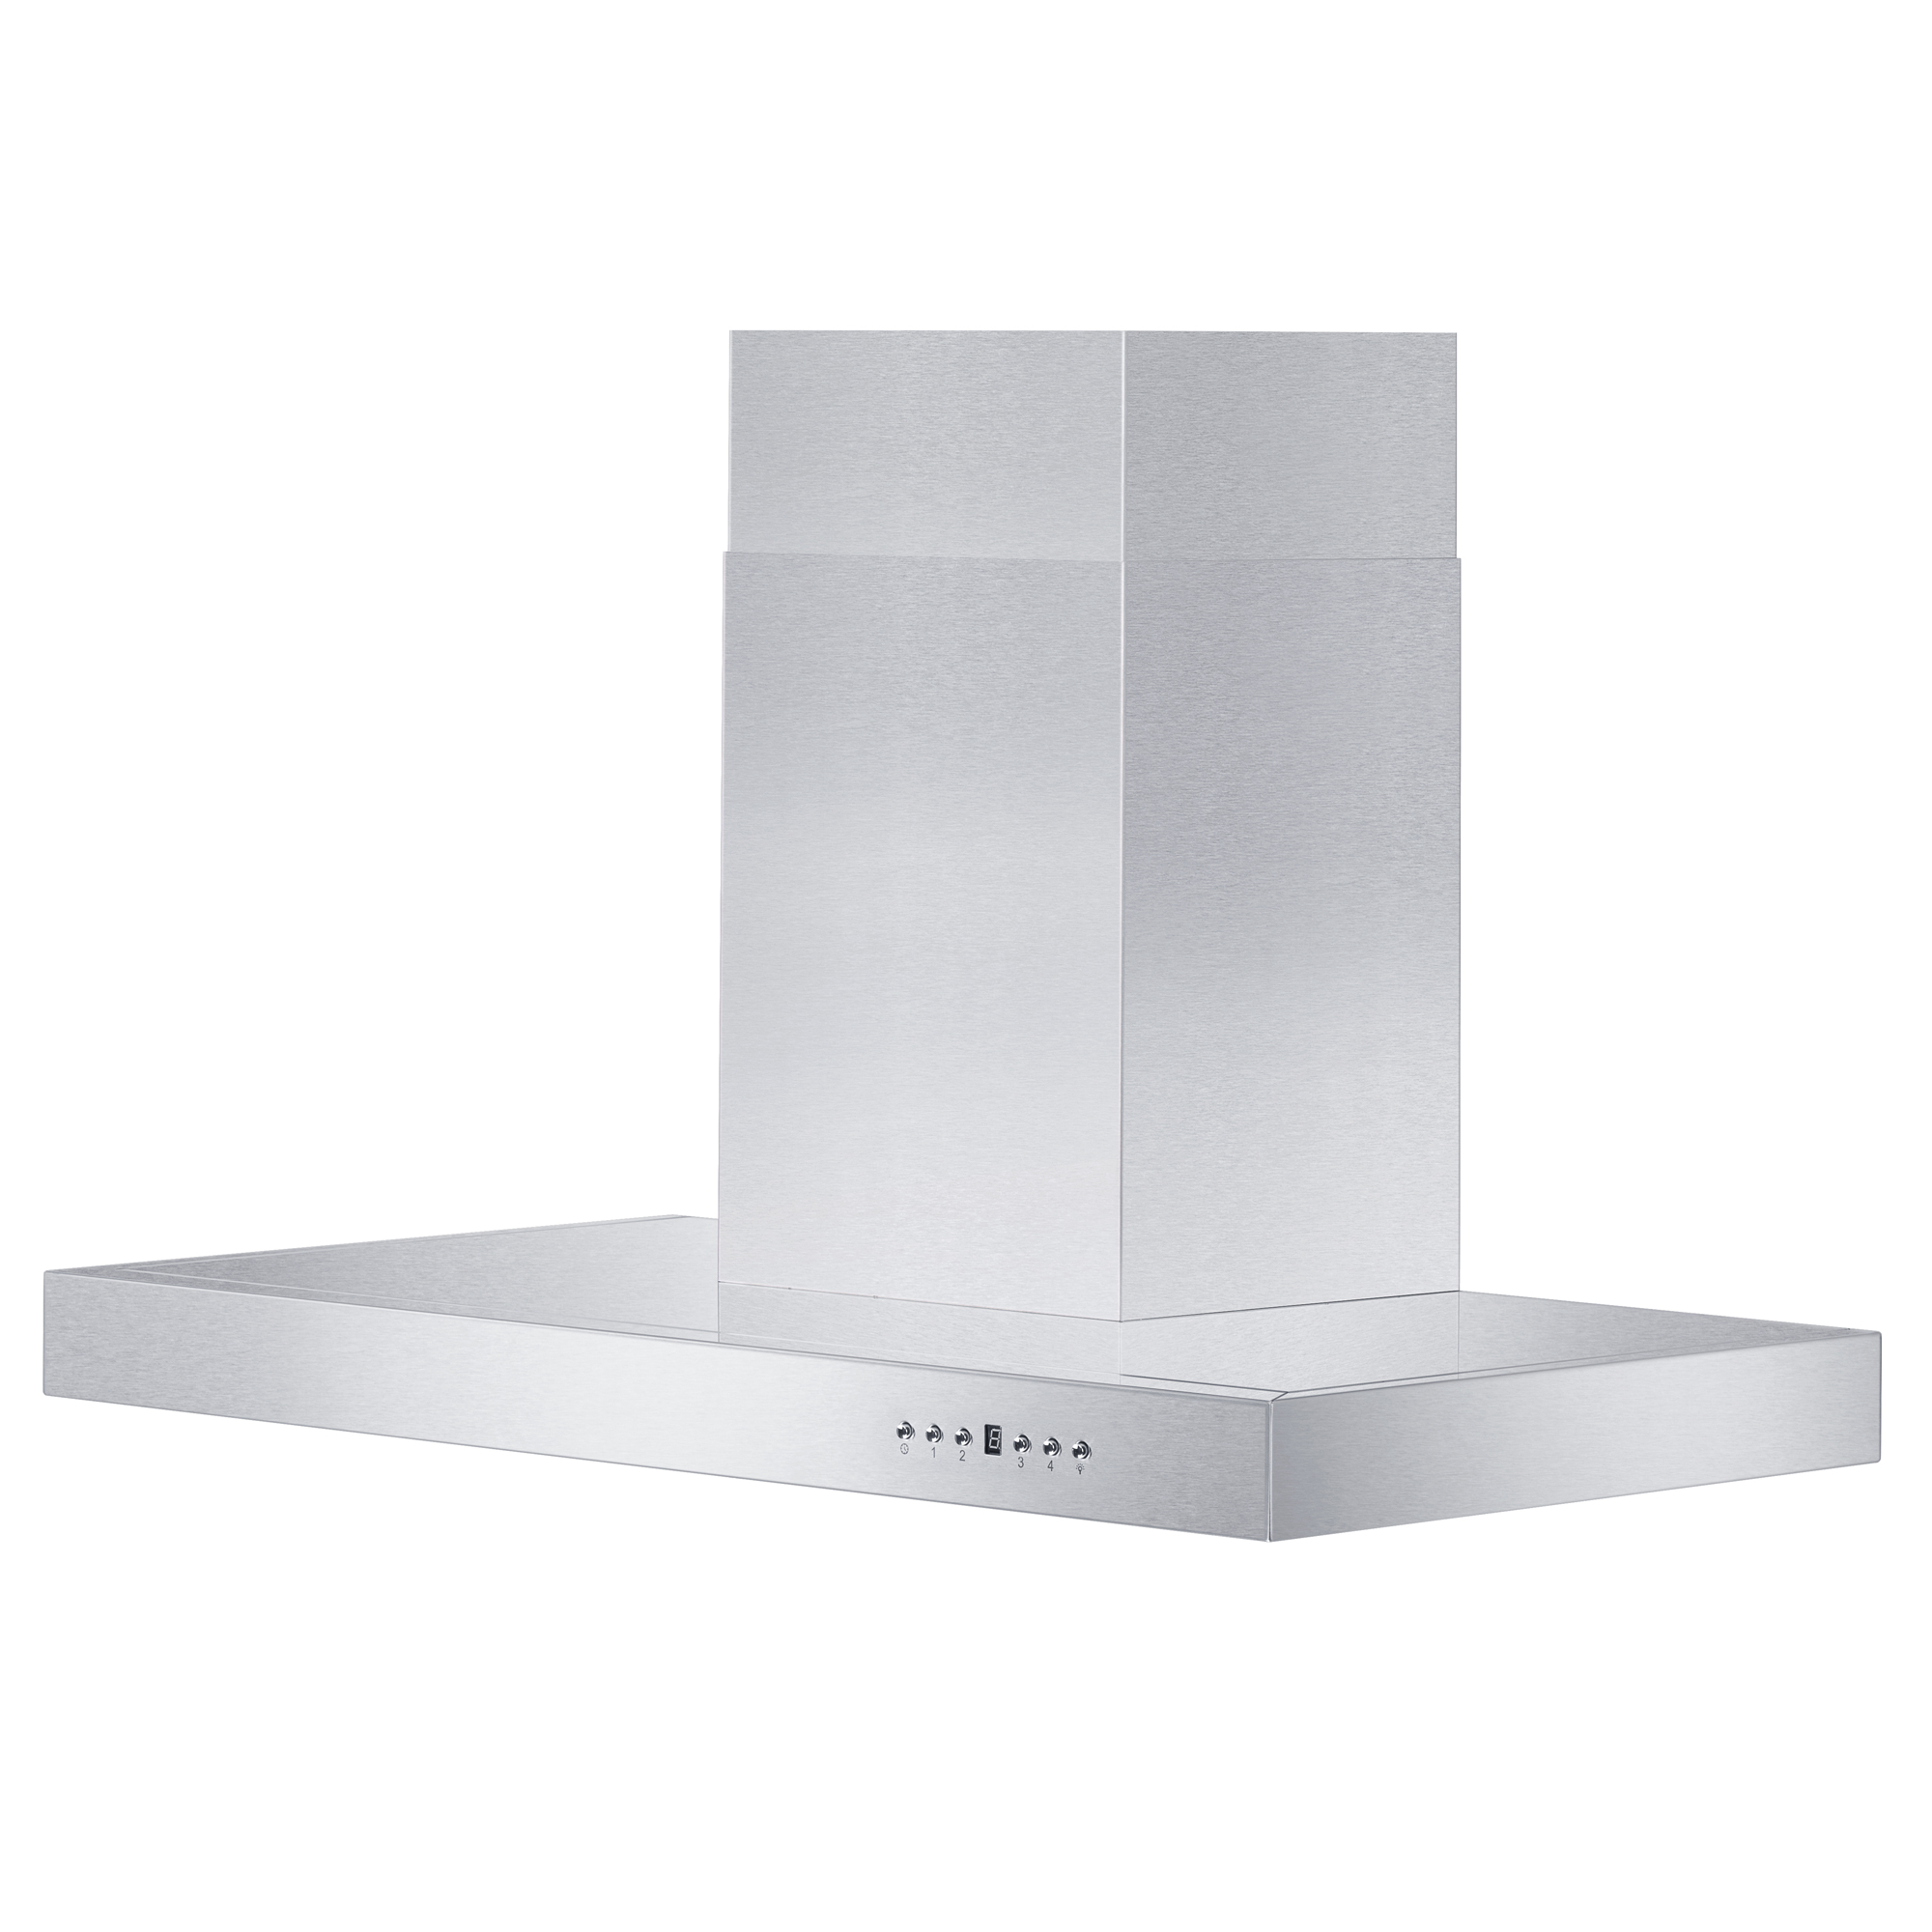 zline-stainless-steel-wall-mounted-range-hood-KE-new-new-main.jpg